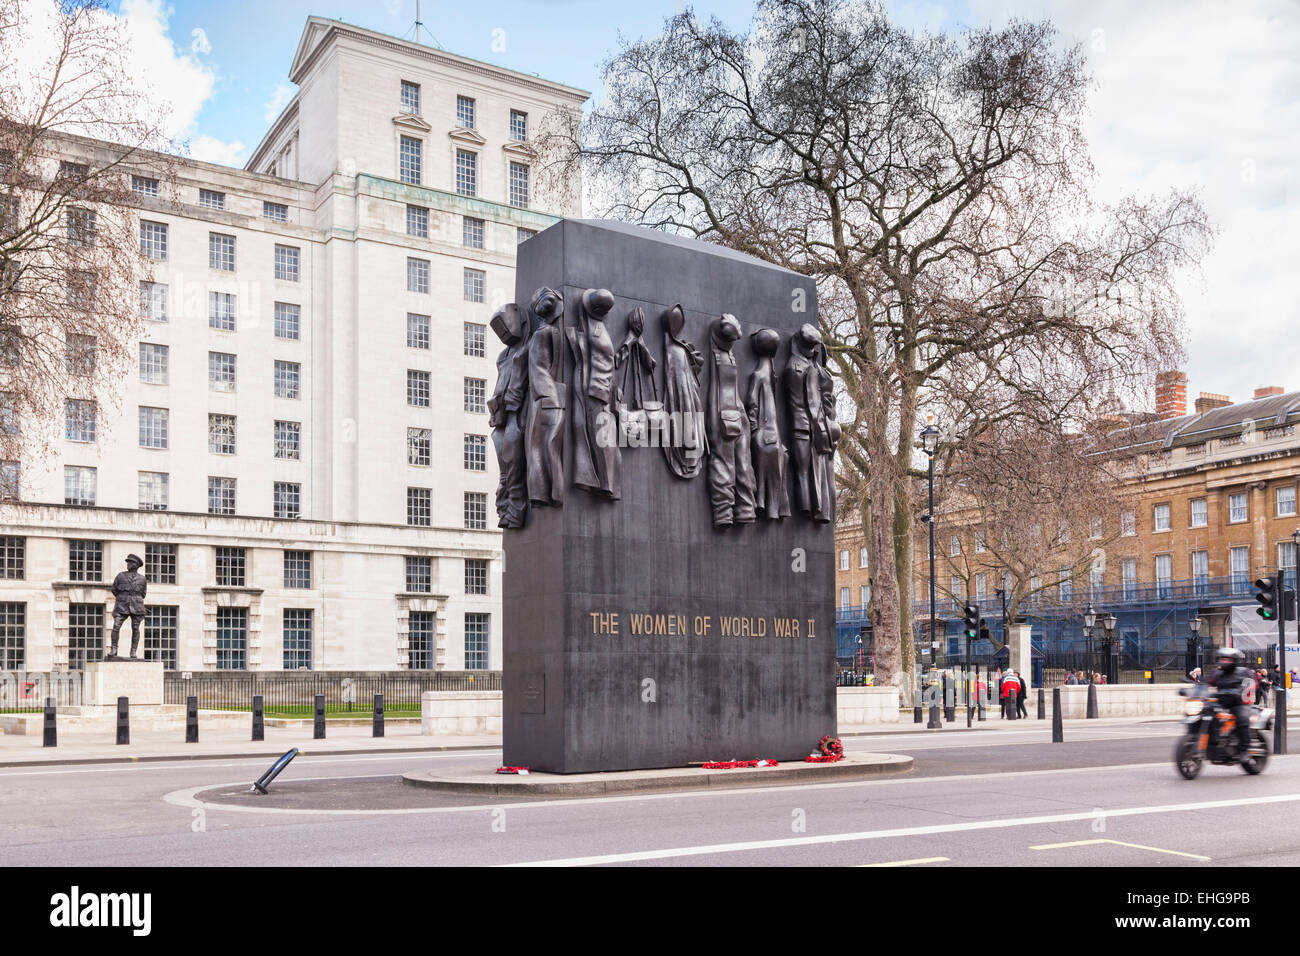 Memorial to The Women of World War 2 in Whitehall, London, by John W. Mills. - Stock Image